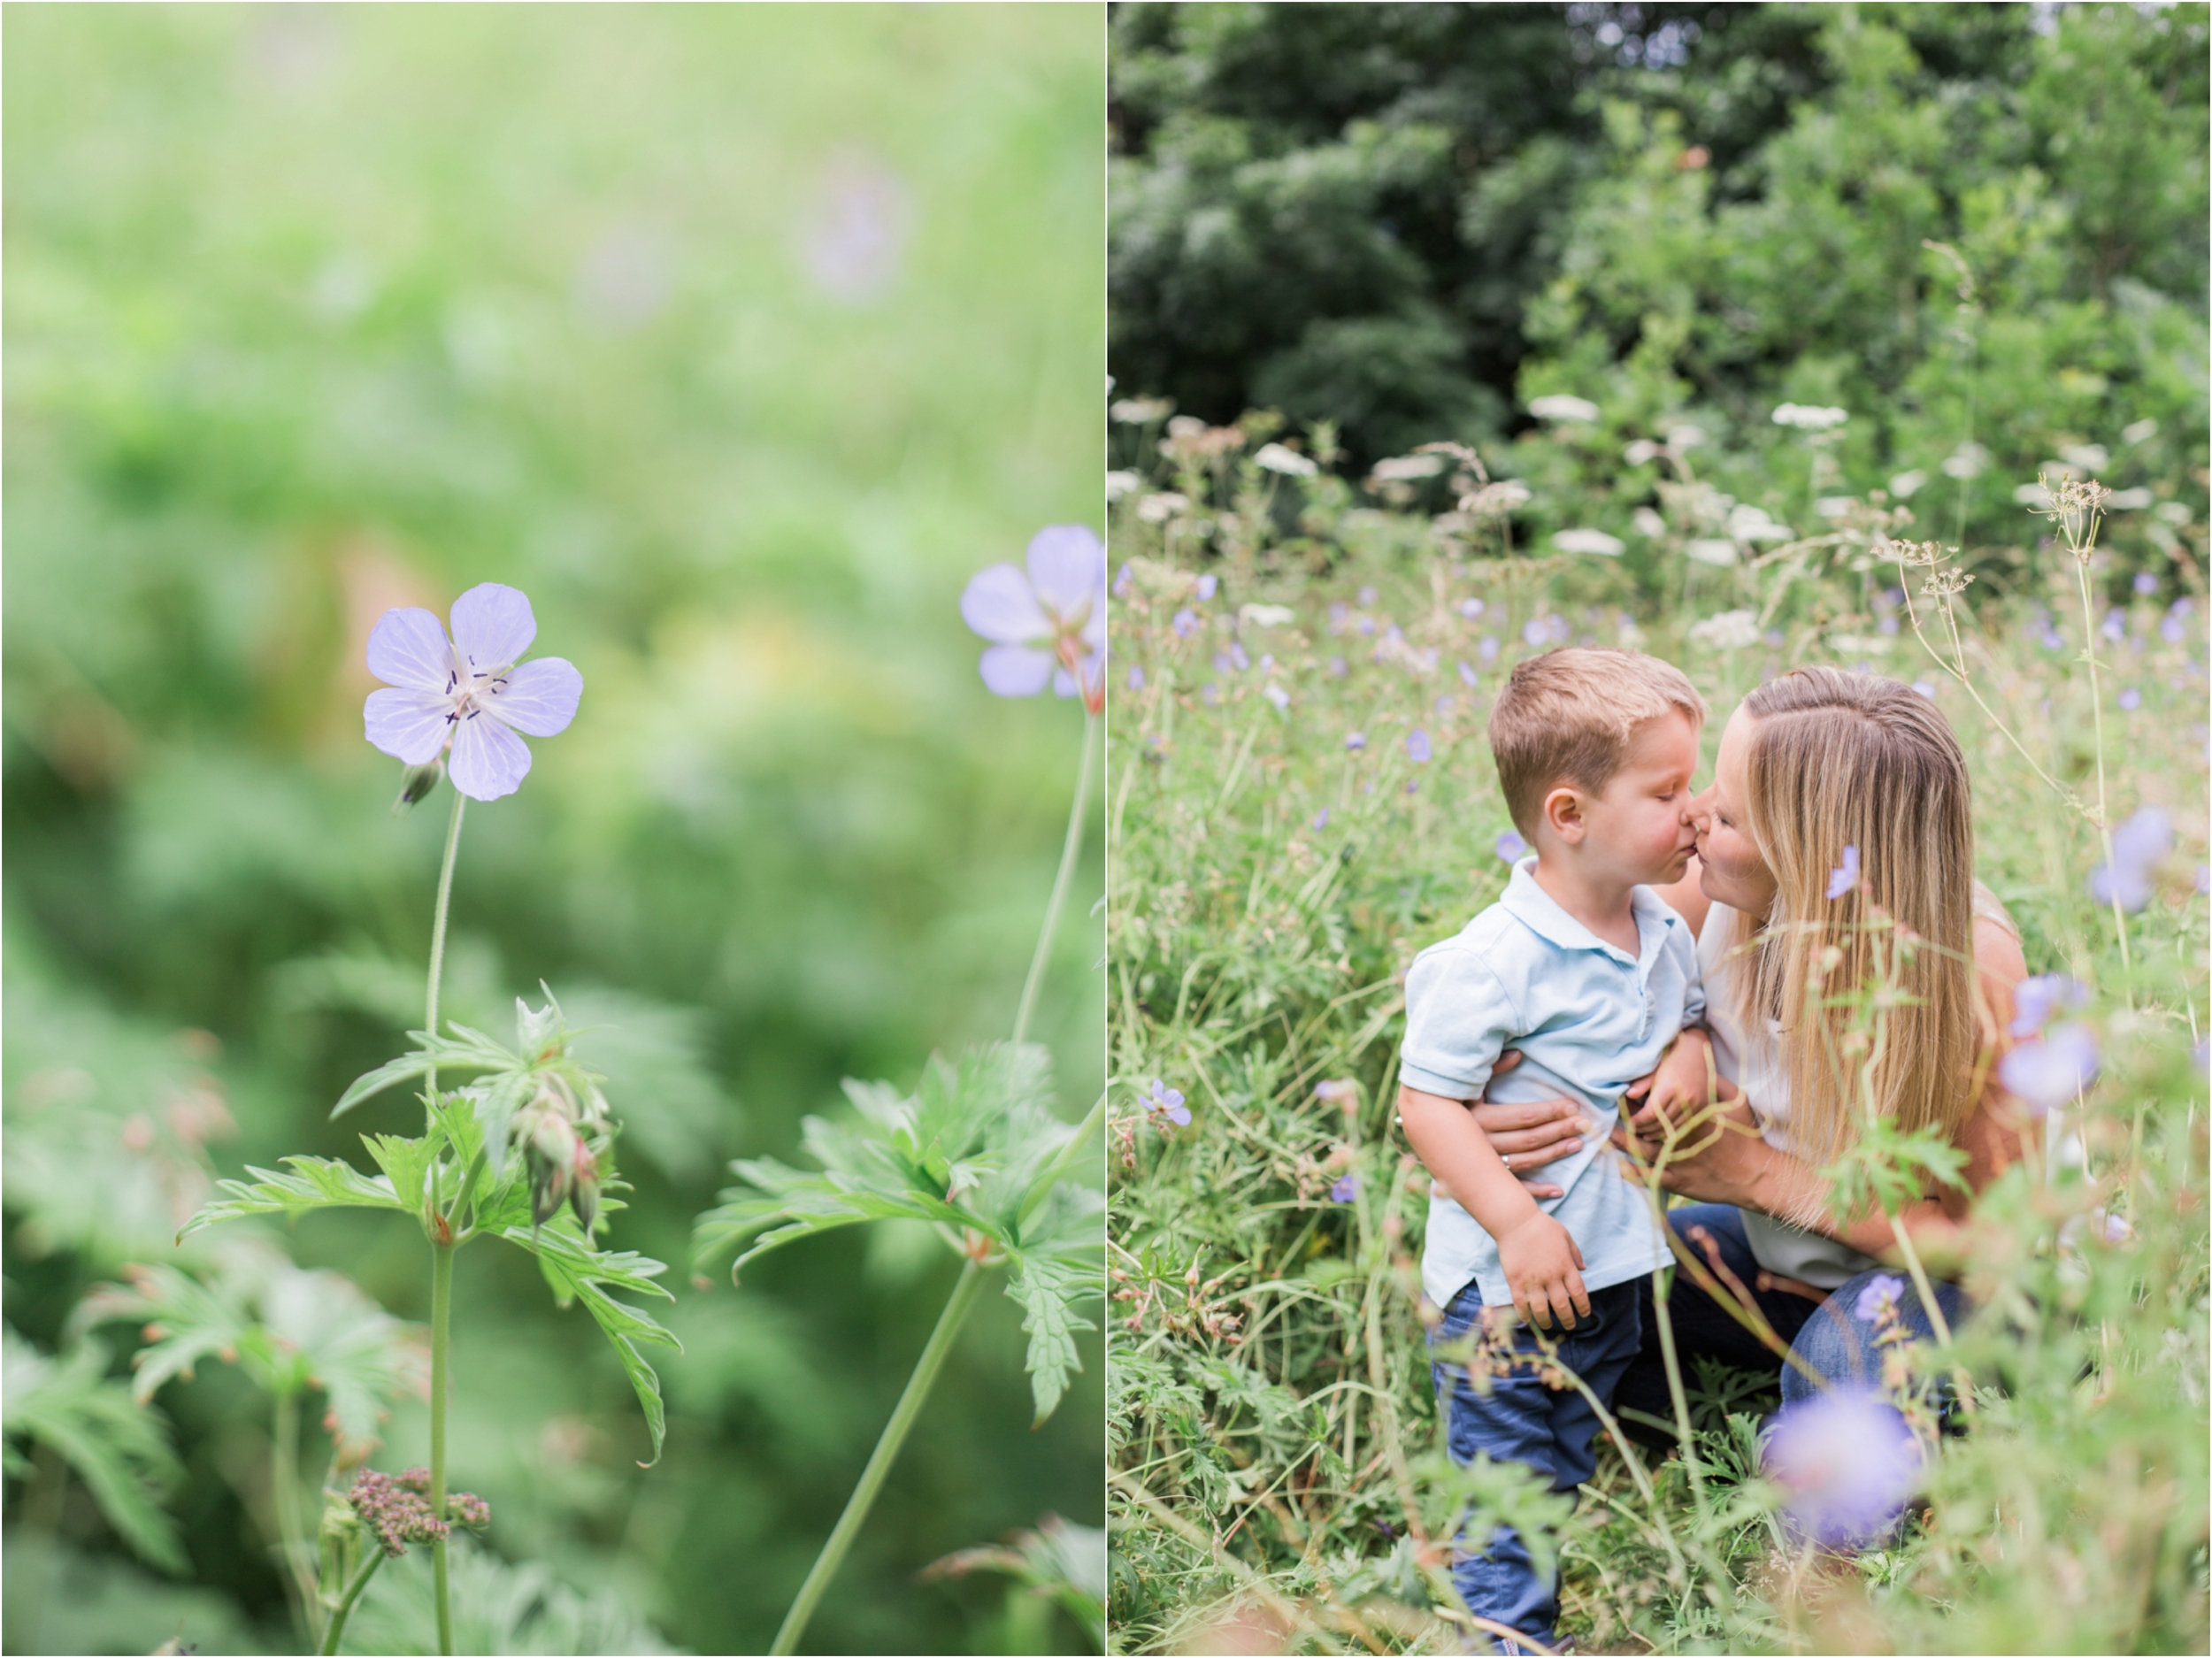 026Sophie Evans Photography, Warwickshire Family Photography, Tailor Family.jpg